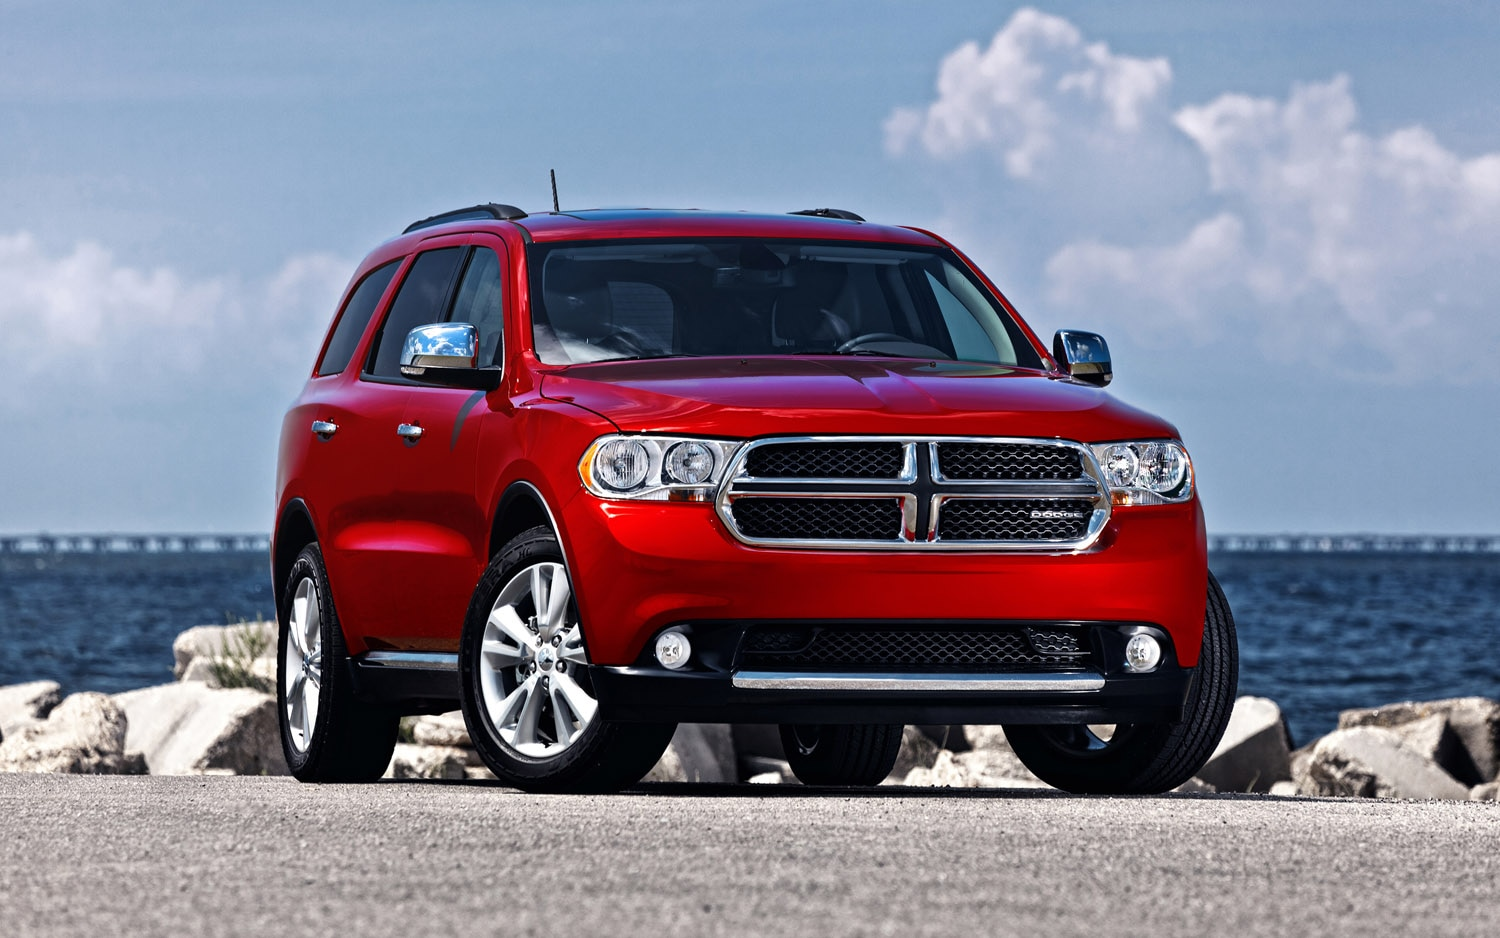 recall central 2013 dodge durango for air bag controller issues. Black Bedroom Furniture Sets. Home Design Ideas